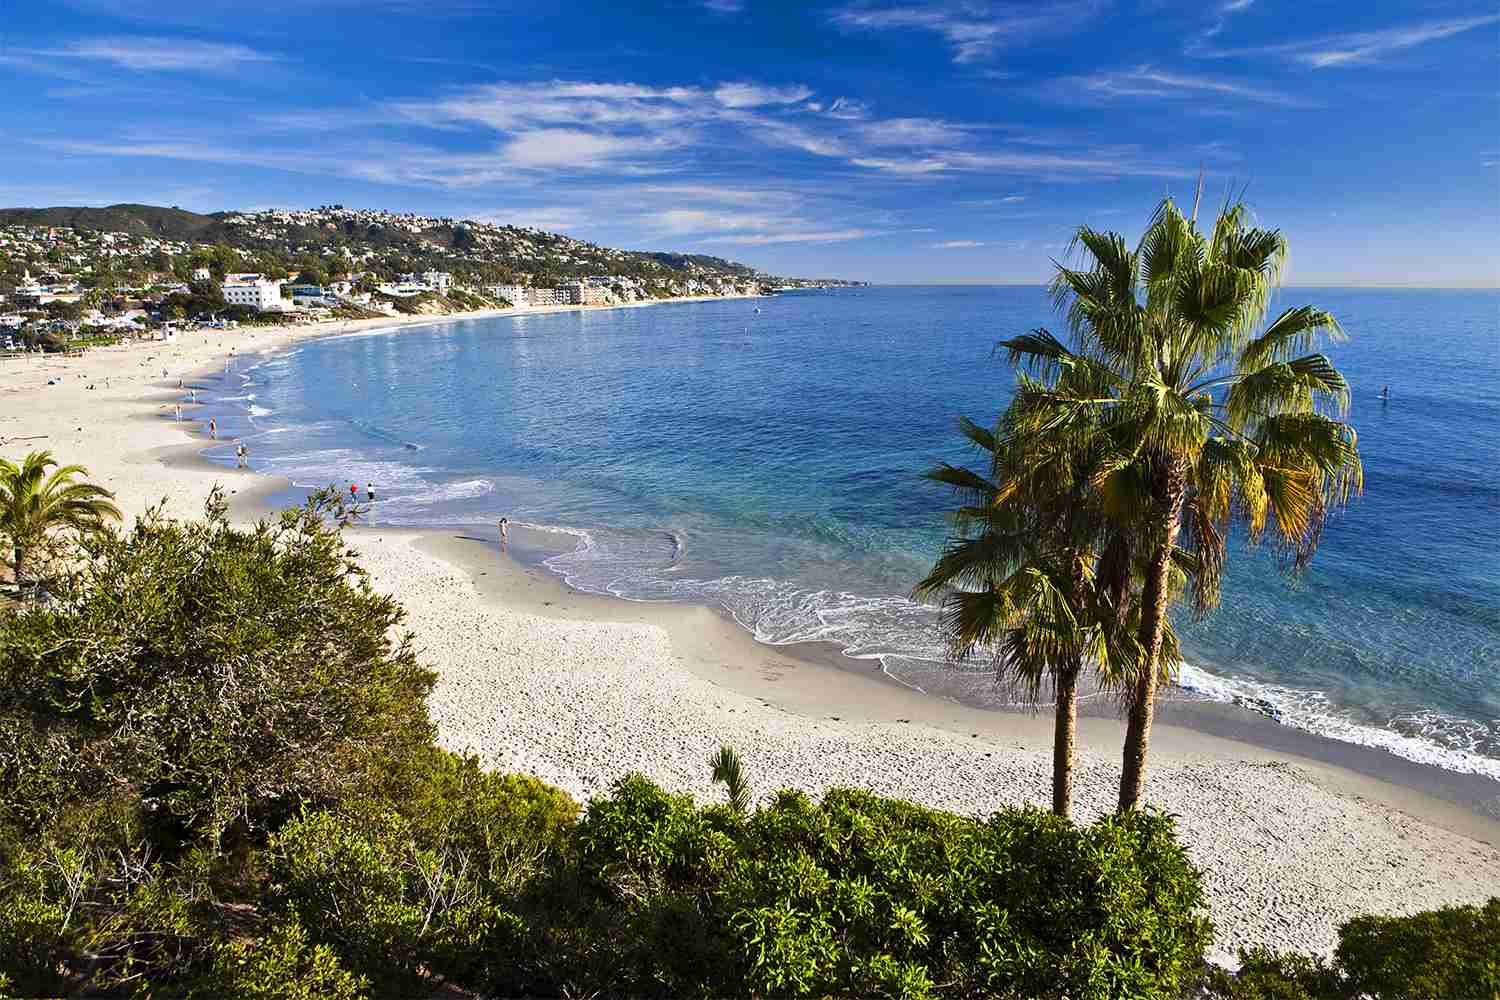 laguna beach hotels how to find lodging you will love